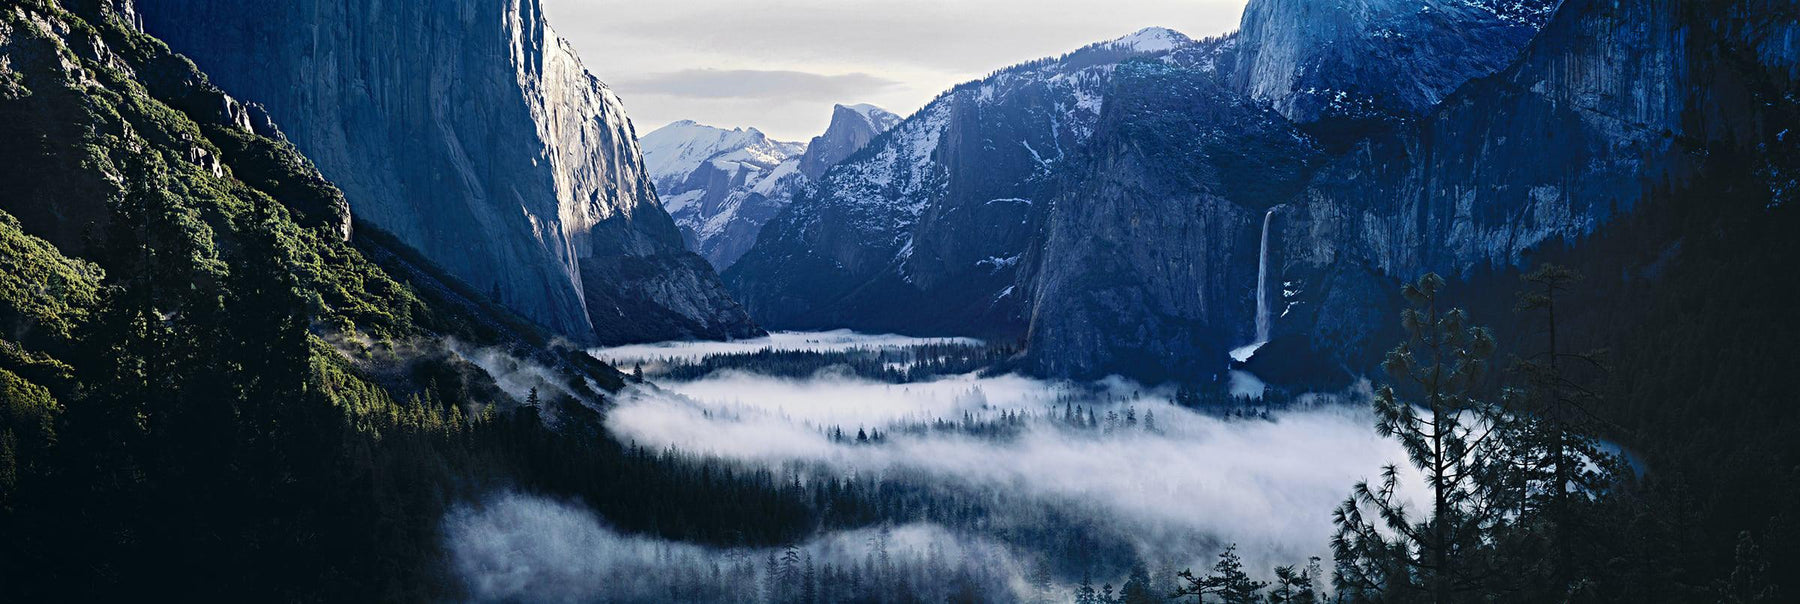 Mist filling up the valley at Yosemite National Park from Inspiration Point